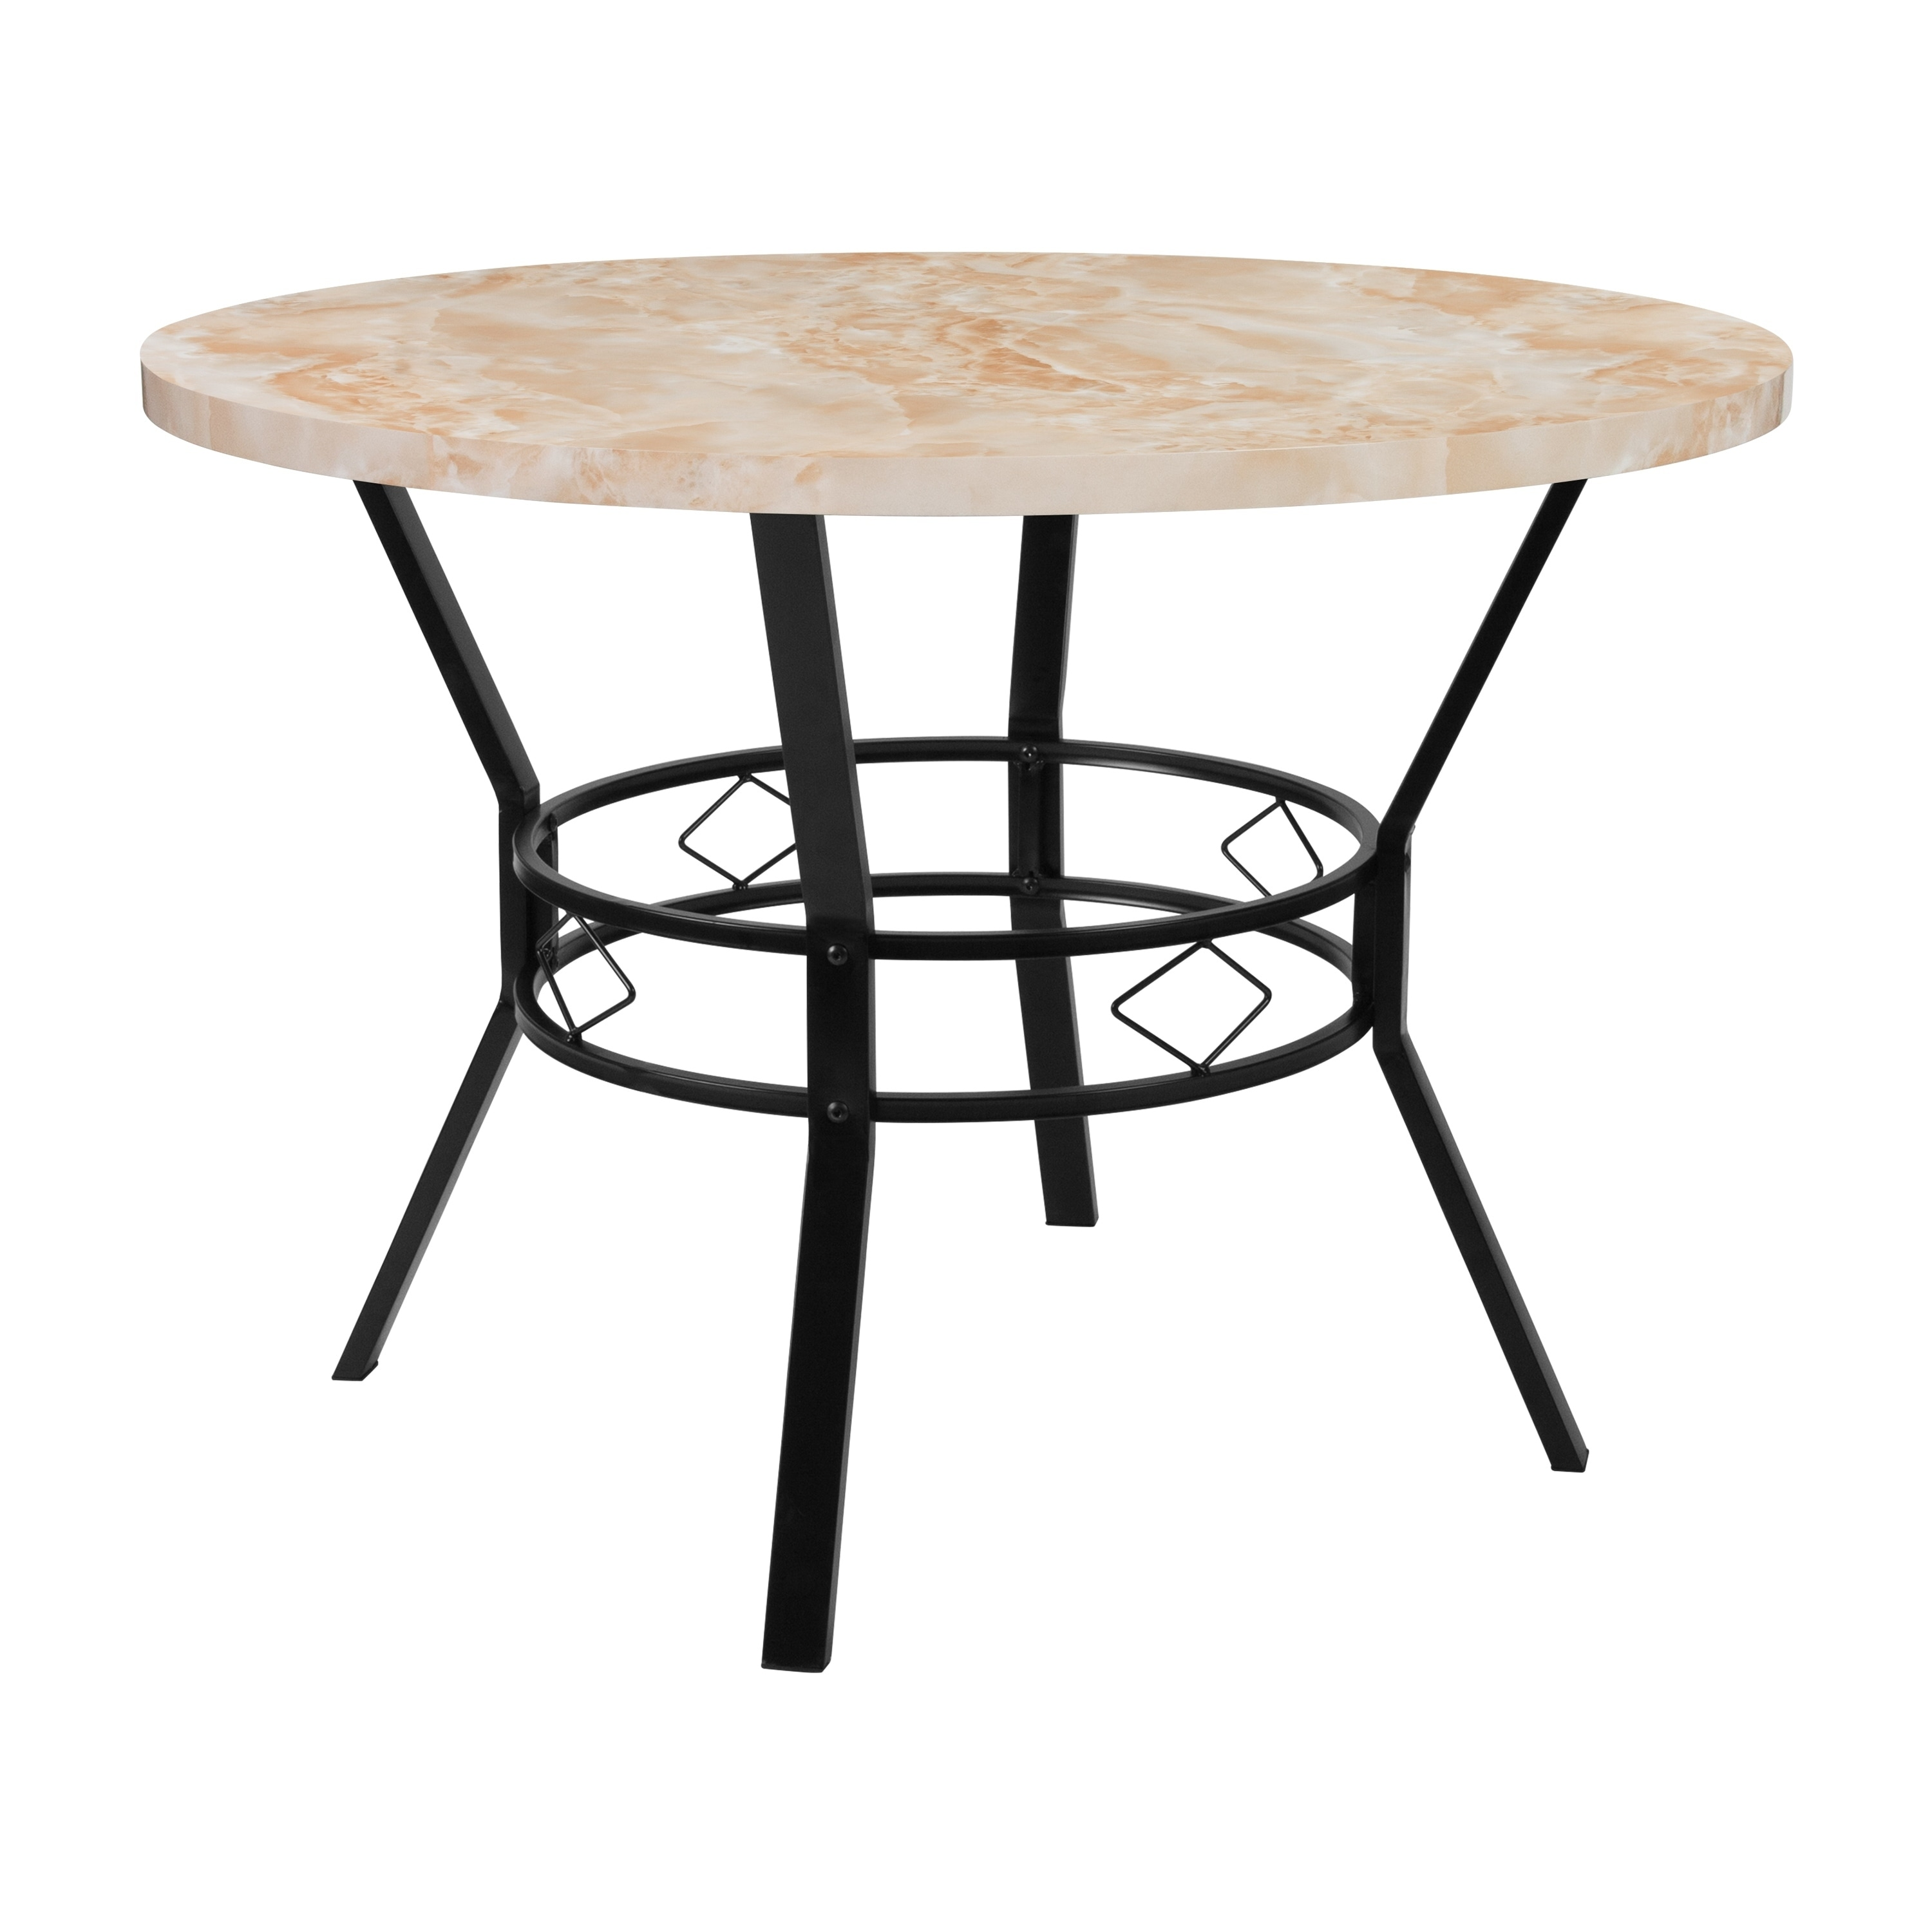 Shop tremont 42 round dining table free shipping today overstock com 21159636